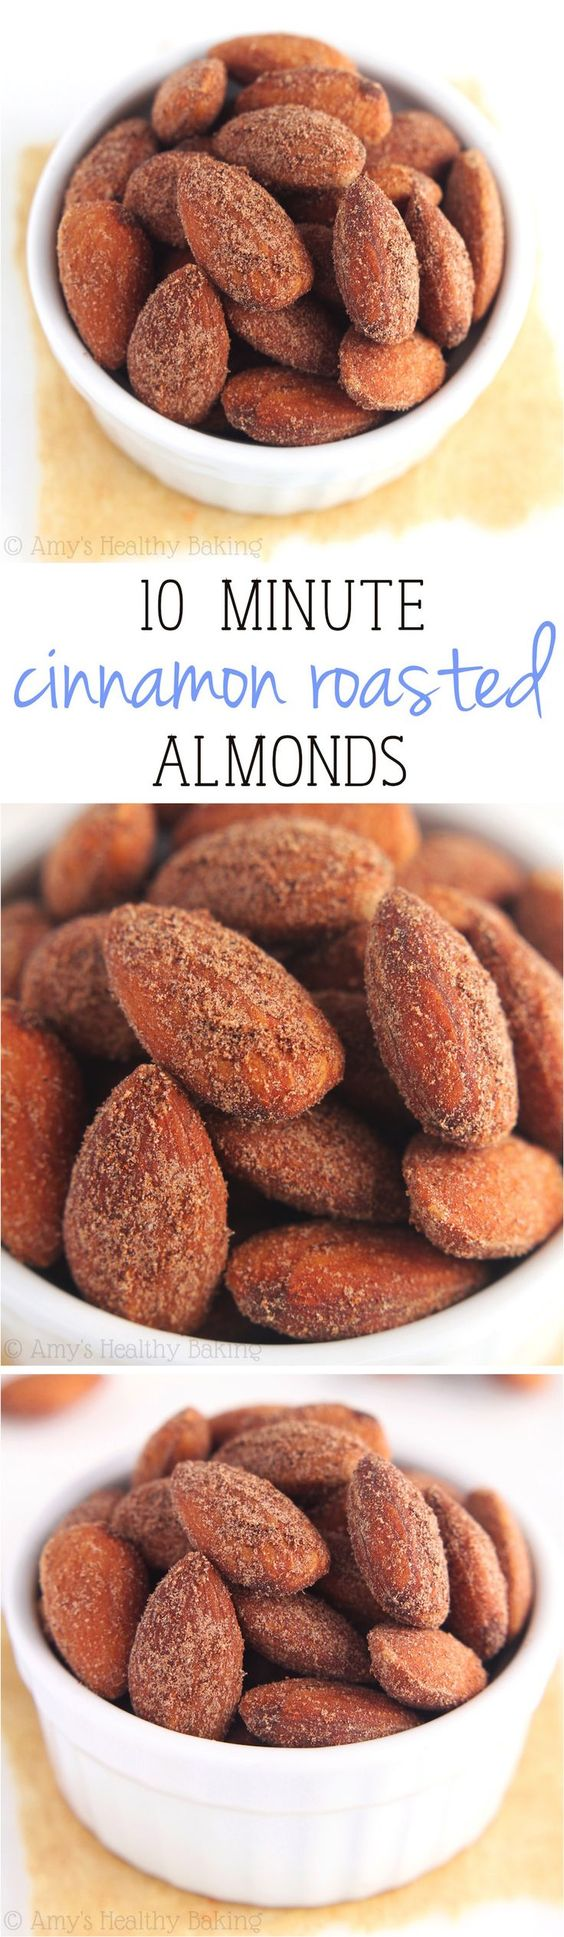 Cinnamon roasted almonds, Roasted almonds and 4 ...